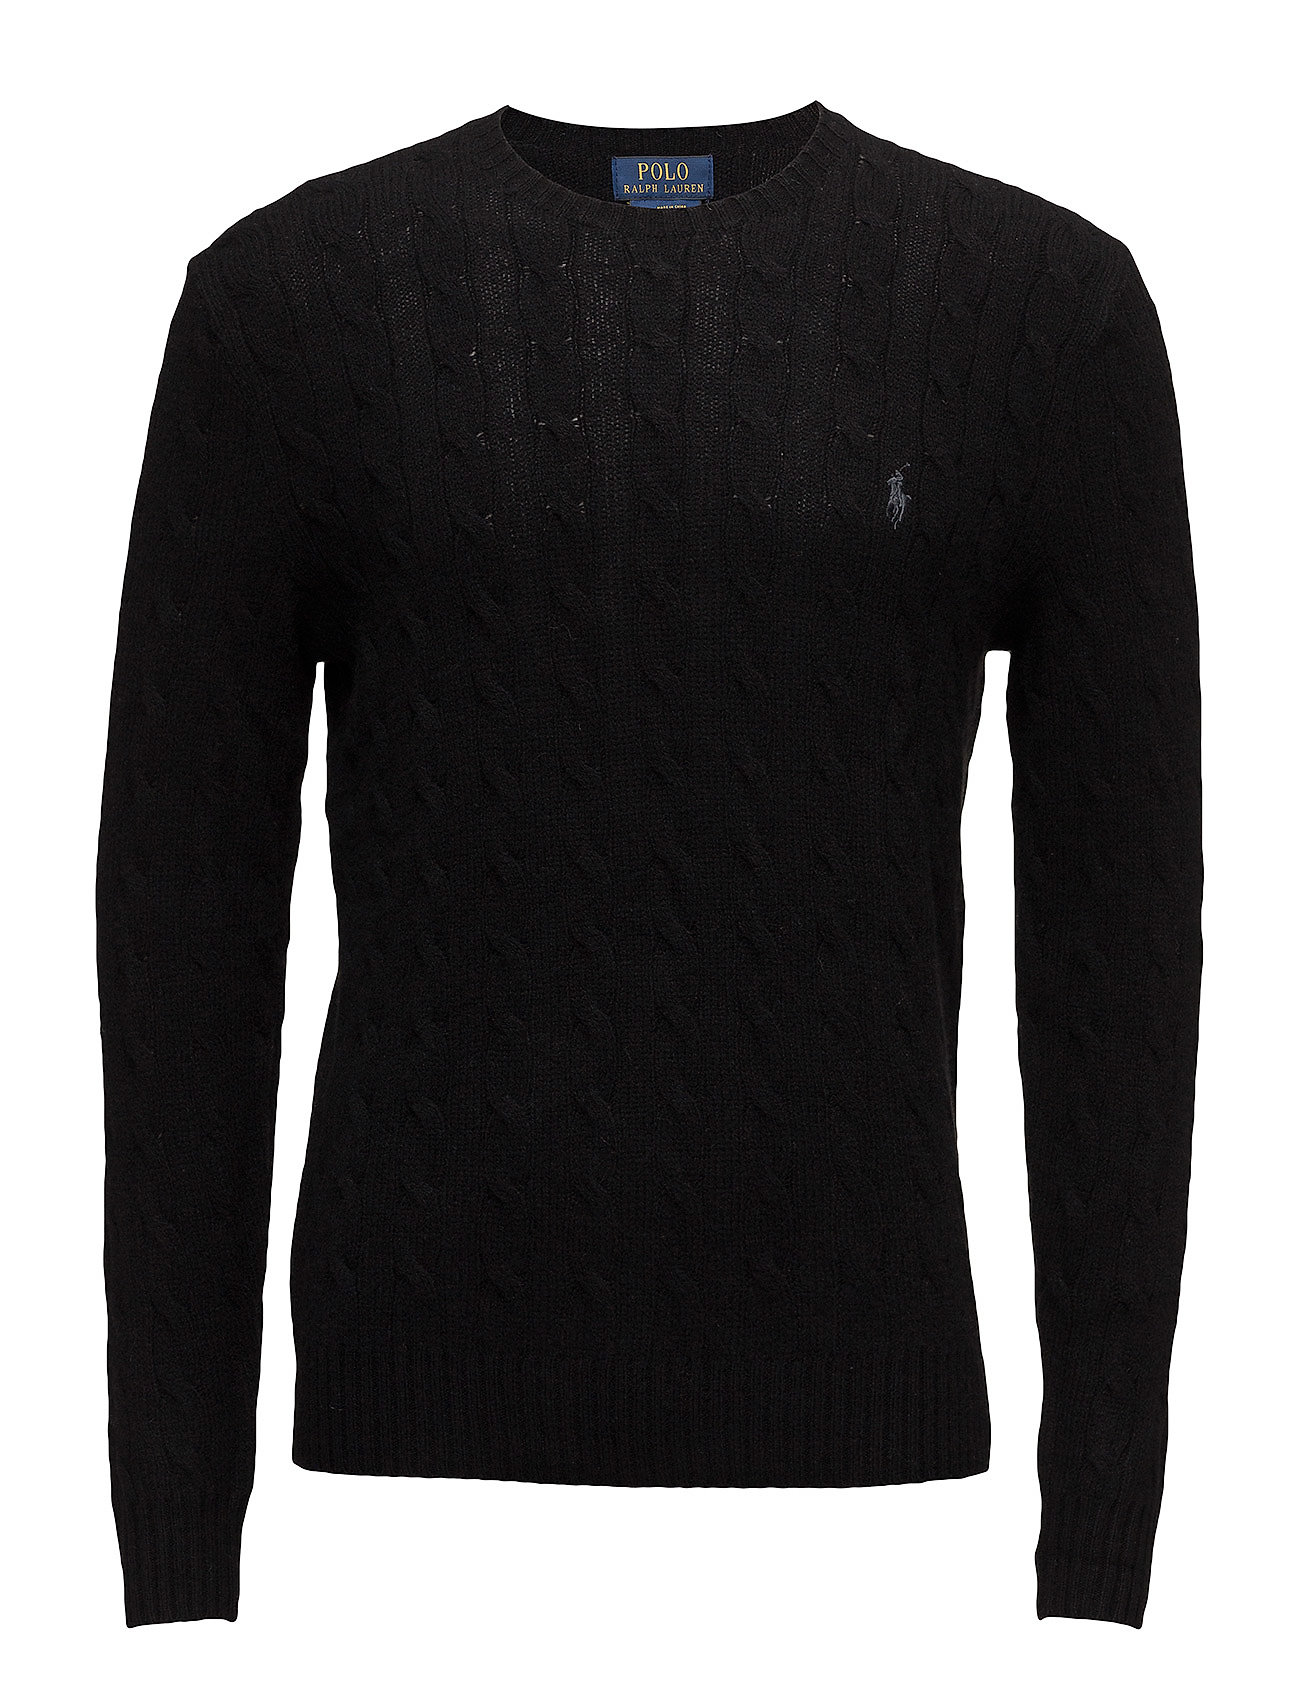 Wool-cashmere Cable-knit Sweater (Polo Black) (£115.50) - Polo ...